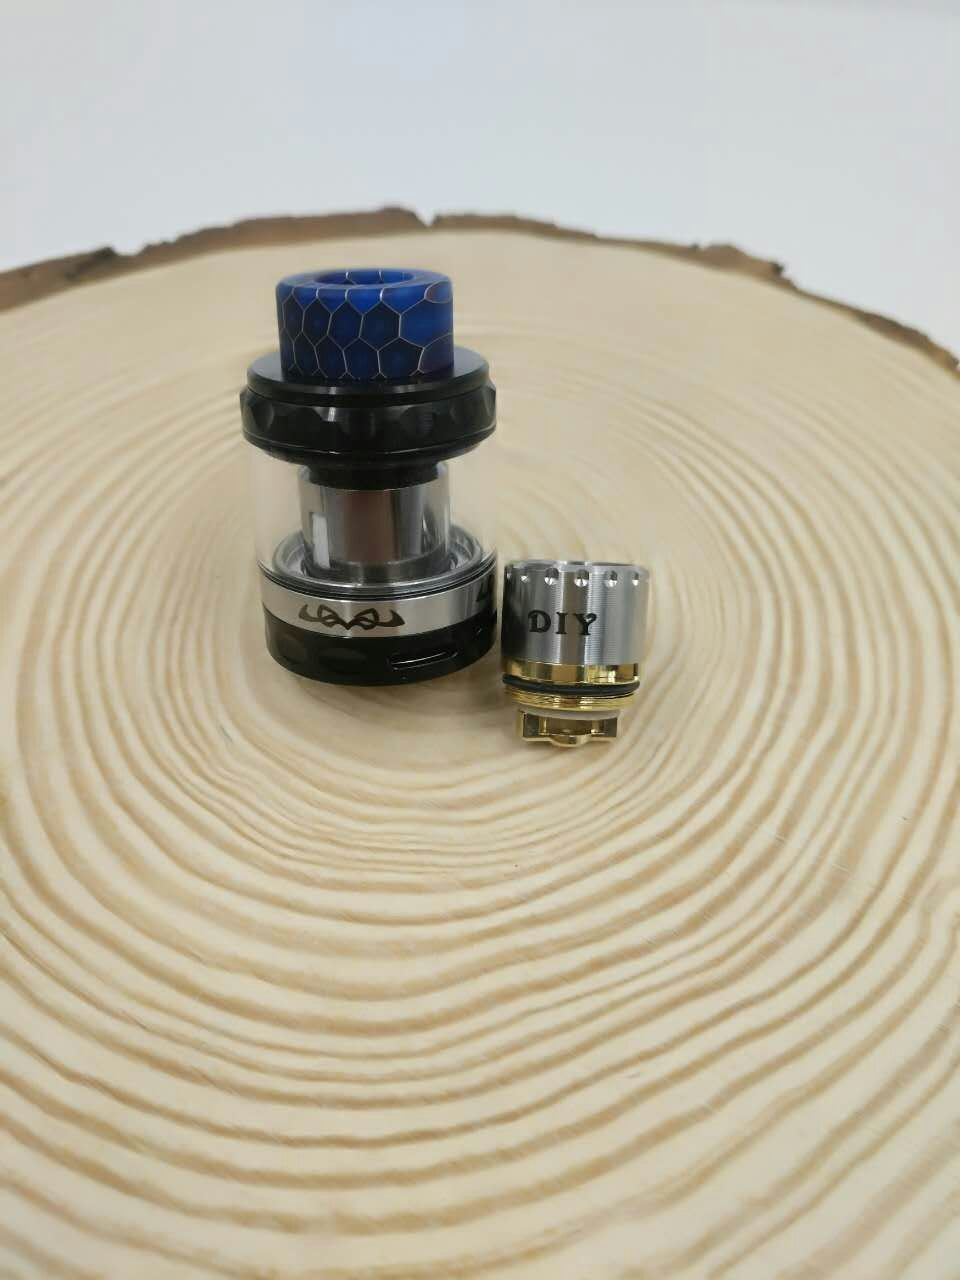 2018 Vape Rebuildable Tank Atomizer With DIY